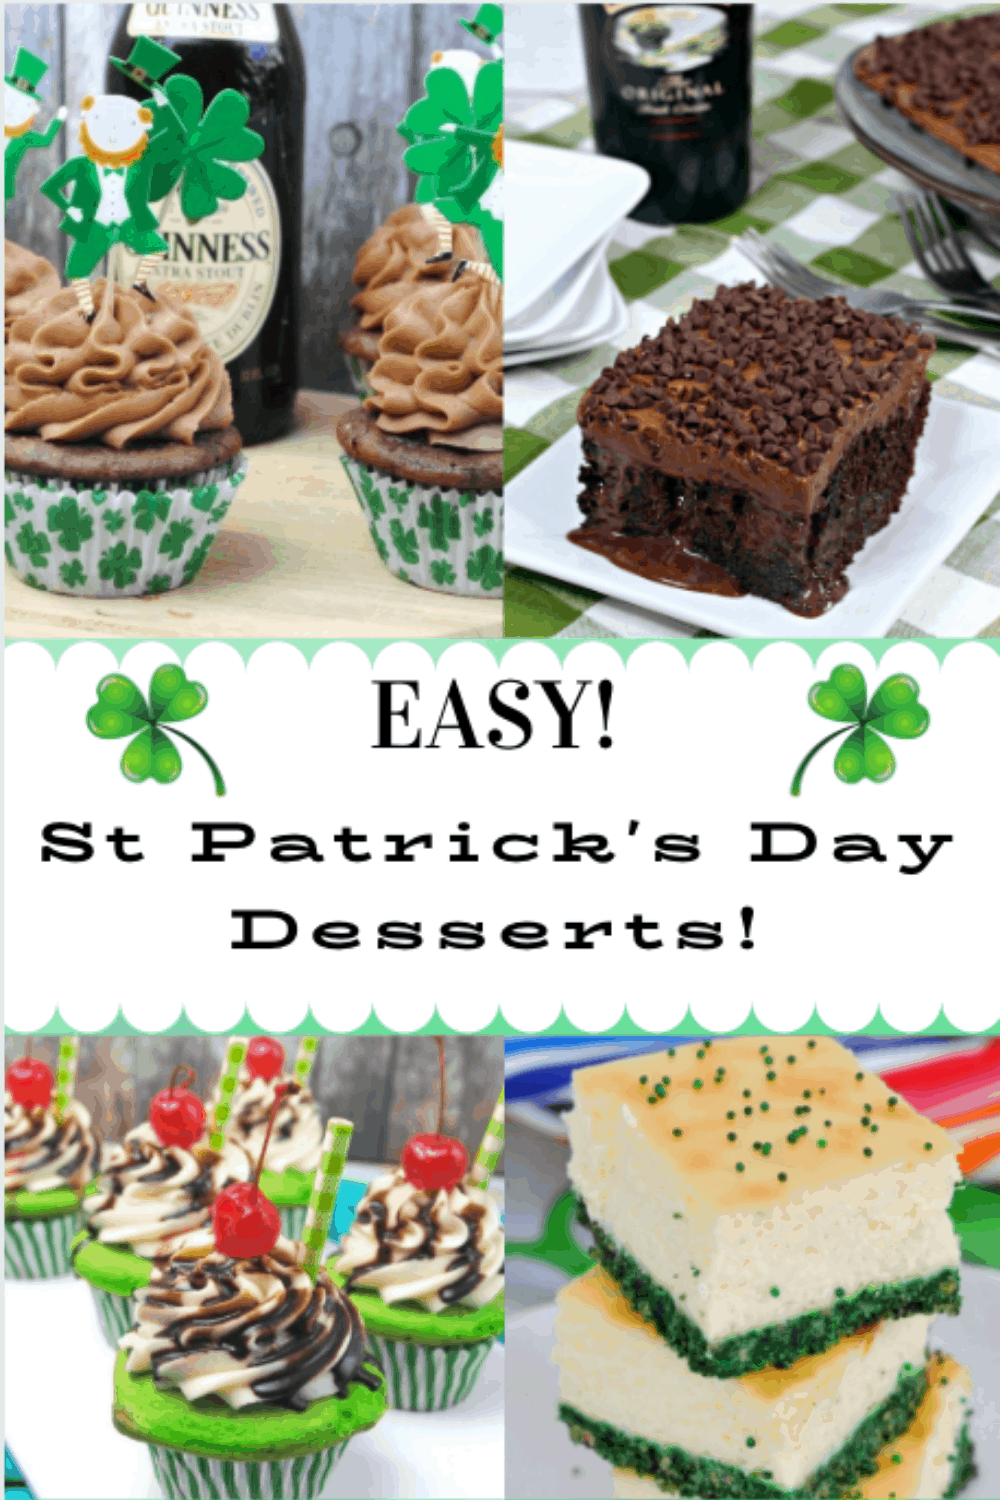 Celebrating the green holiday without St. Patrick's Day desserts is not a party at all!